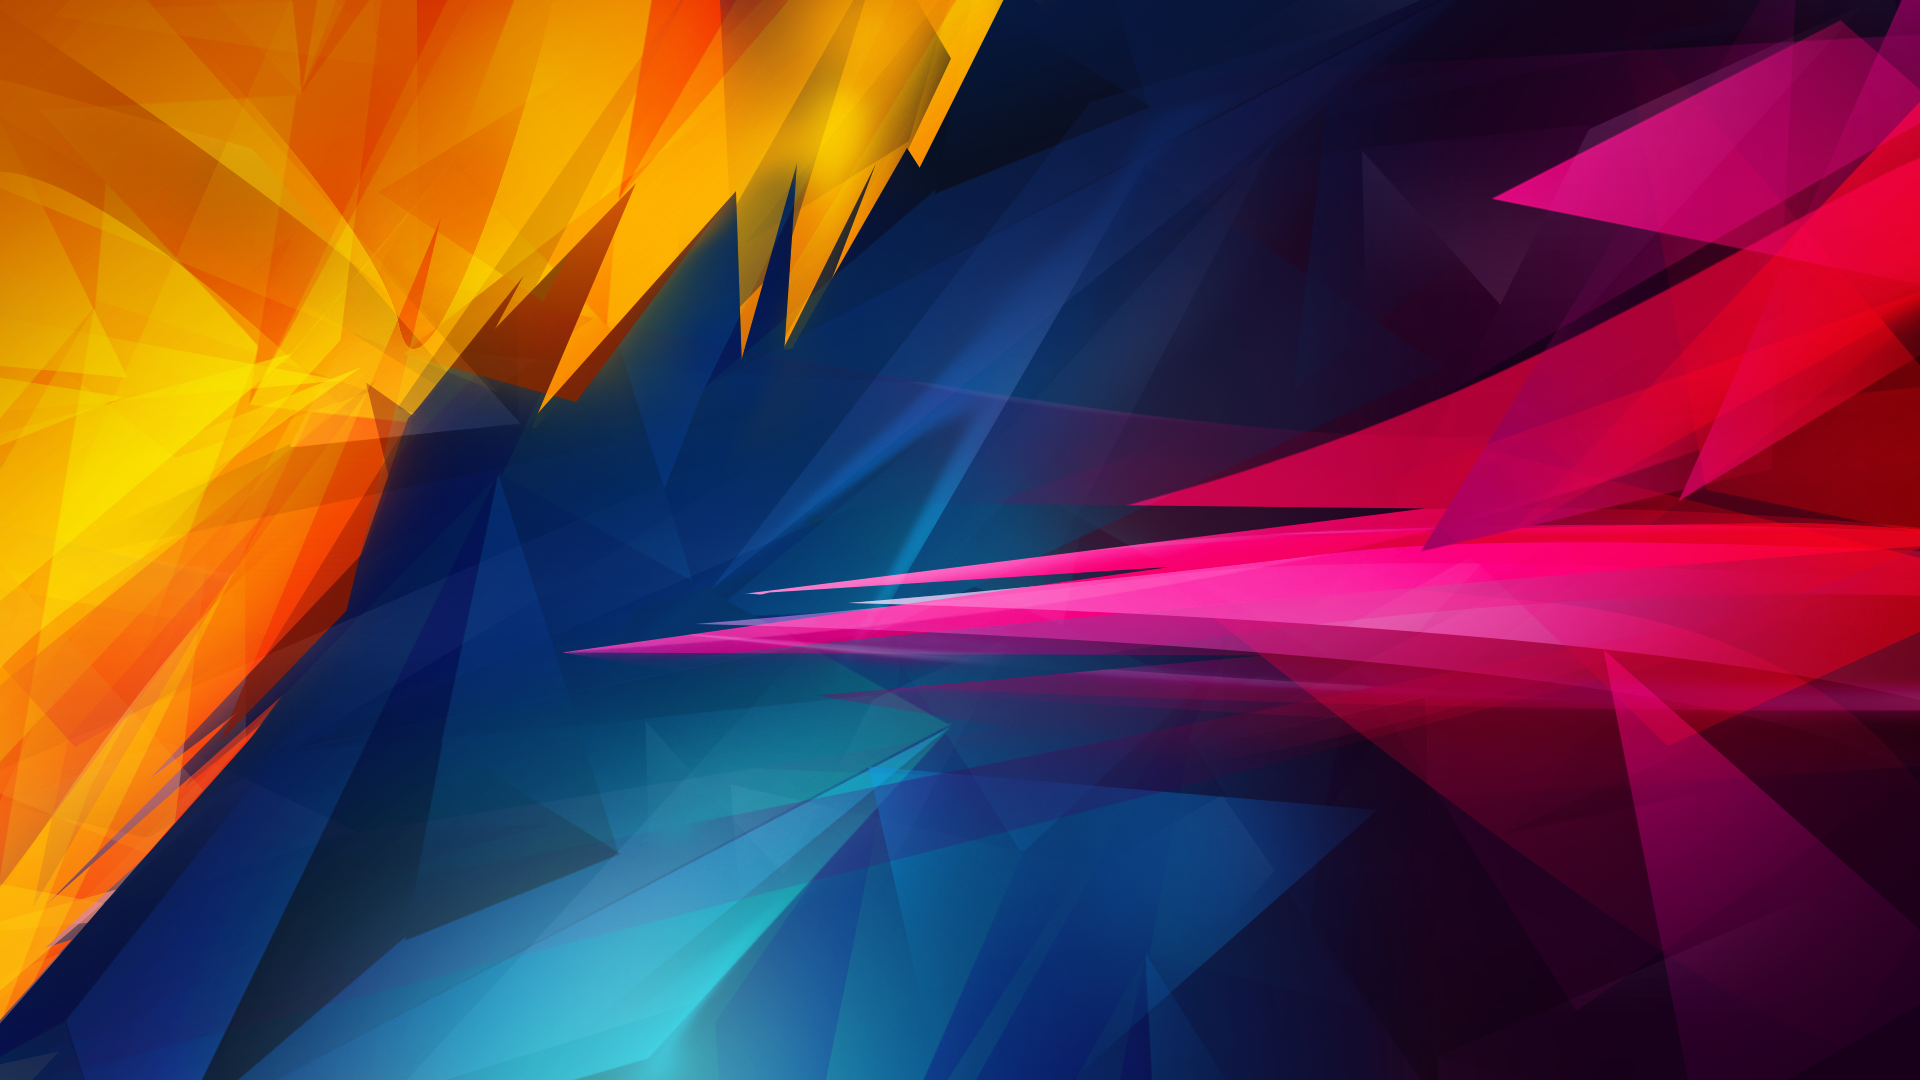 hd abstract wallpapers 1080p wallpapersafari